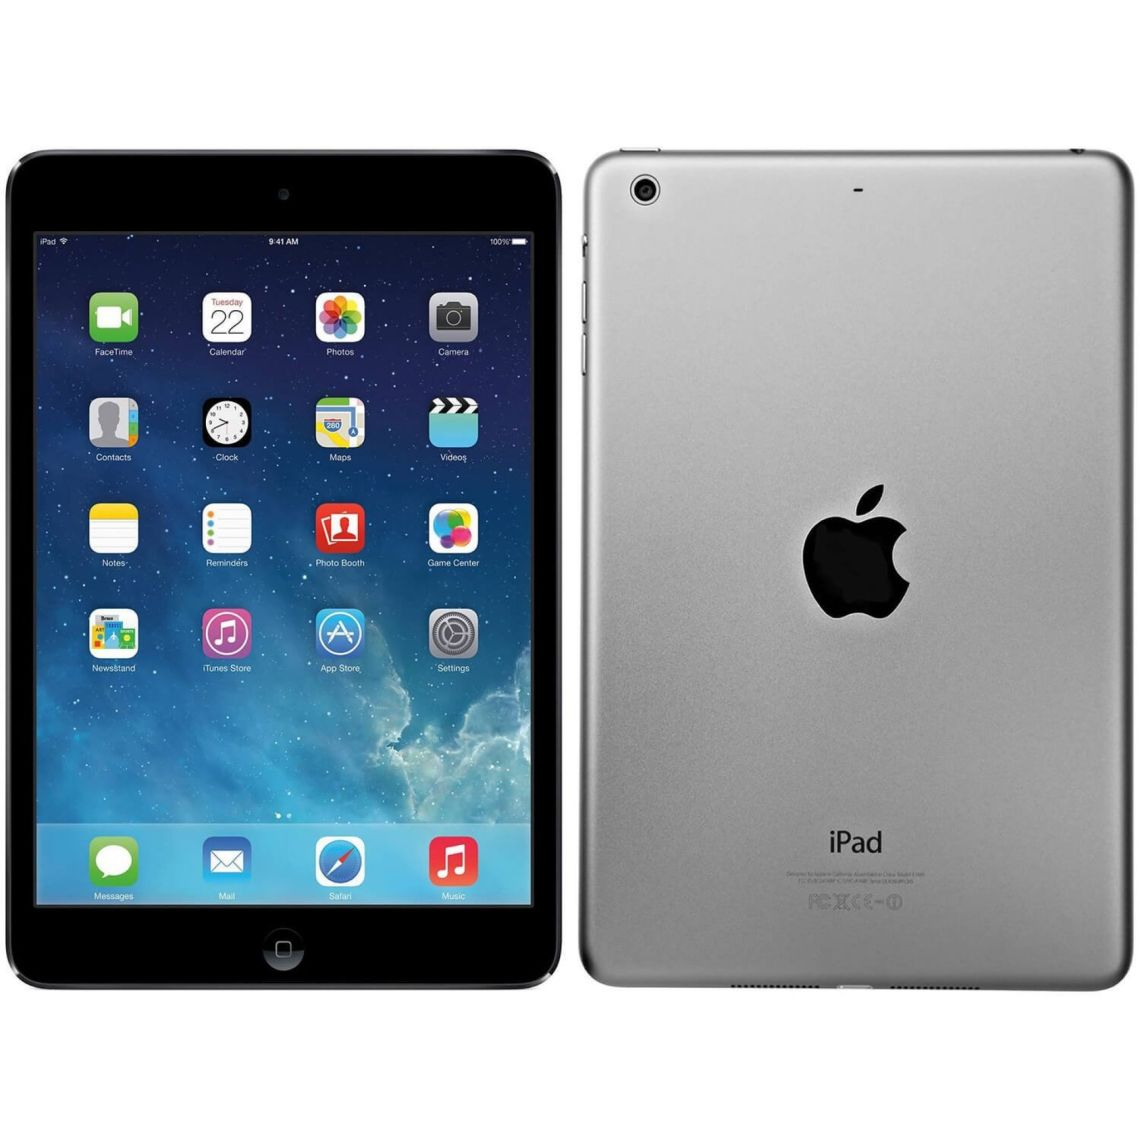 "Refurbished Apple iPad Air WiFi 16GB iOS 7 9.7"" Tablet - MD785LL/A - Space Gray - Walmart.com"